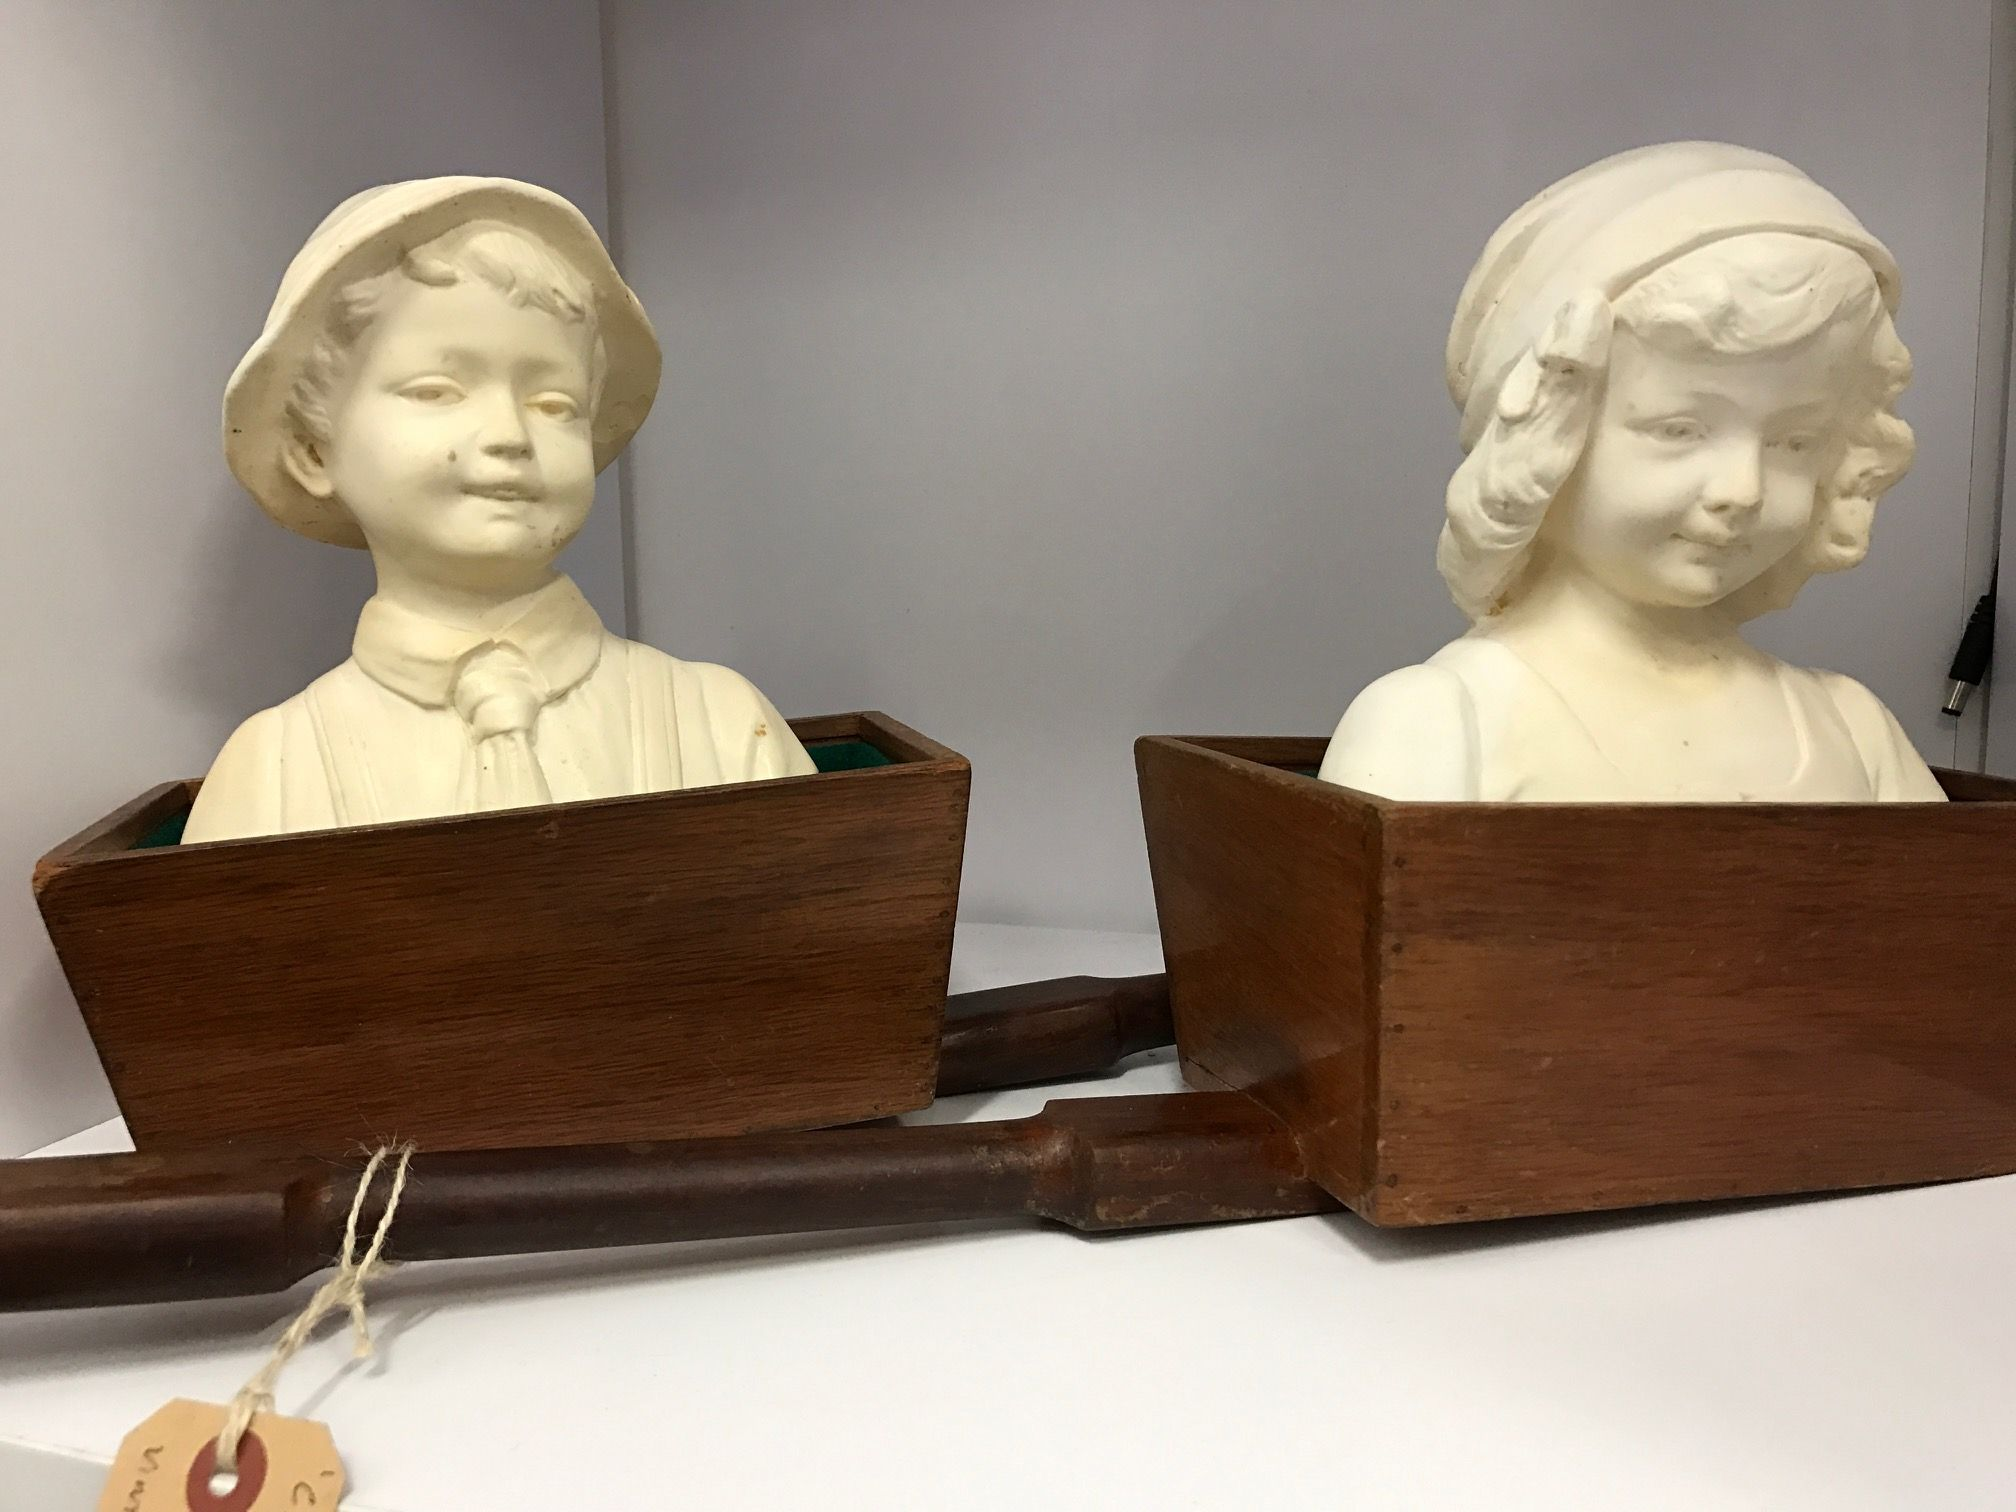 Vint Age Perth has new sculptures in. Childhood, a pair of Vintage busts resting in vintage sheoak giving trays $145